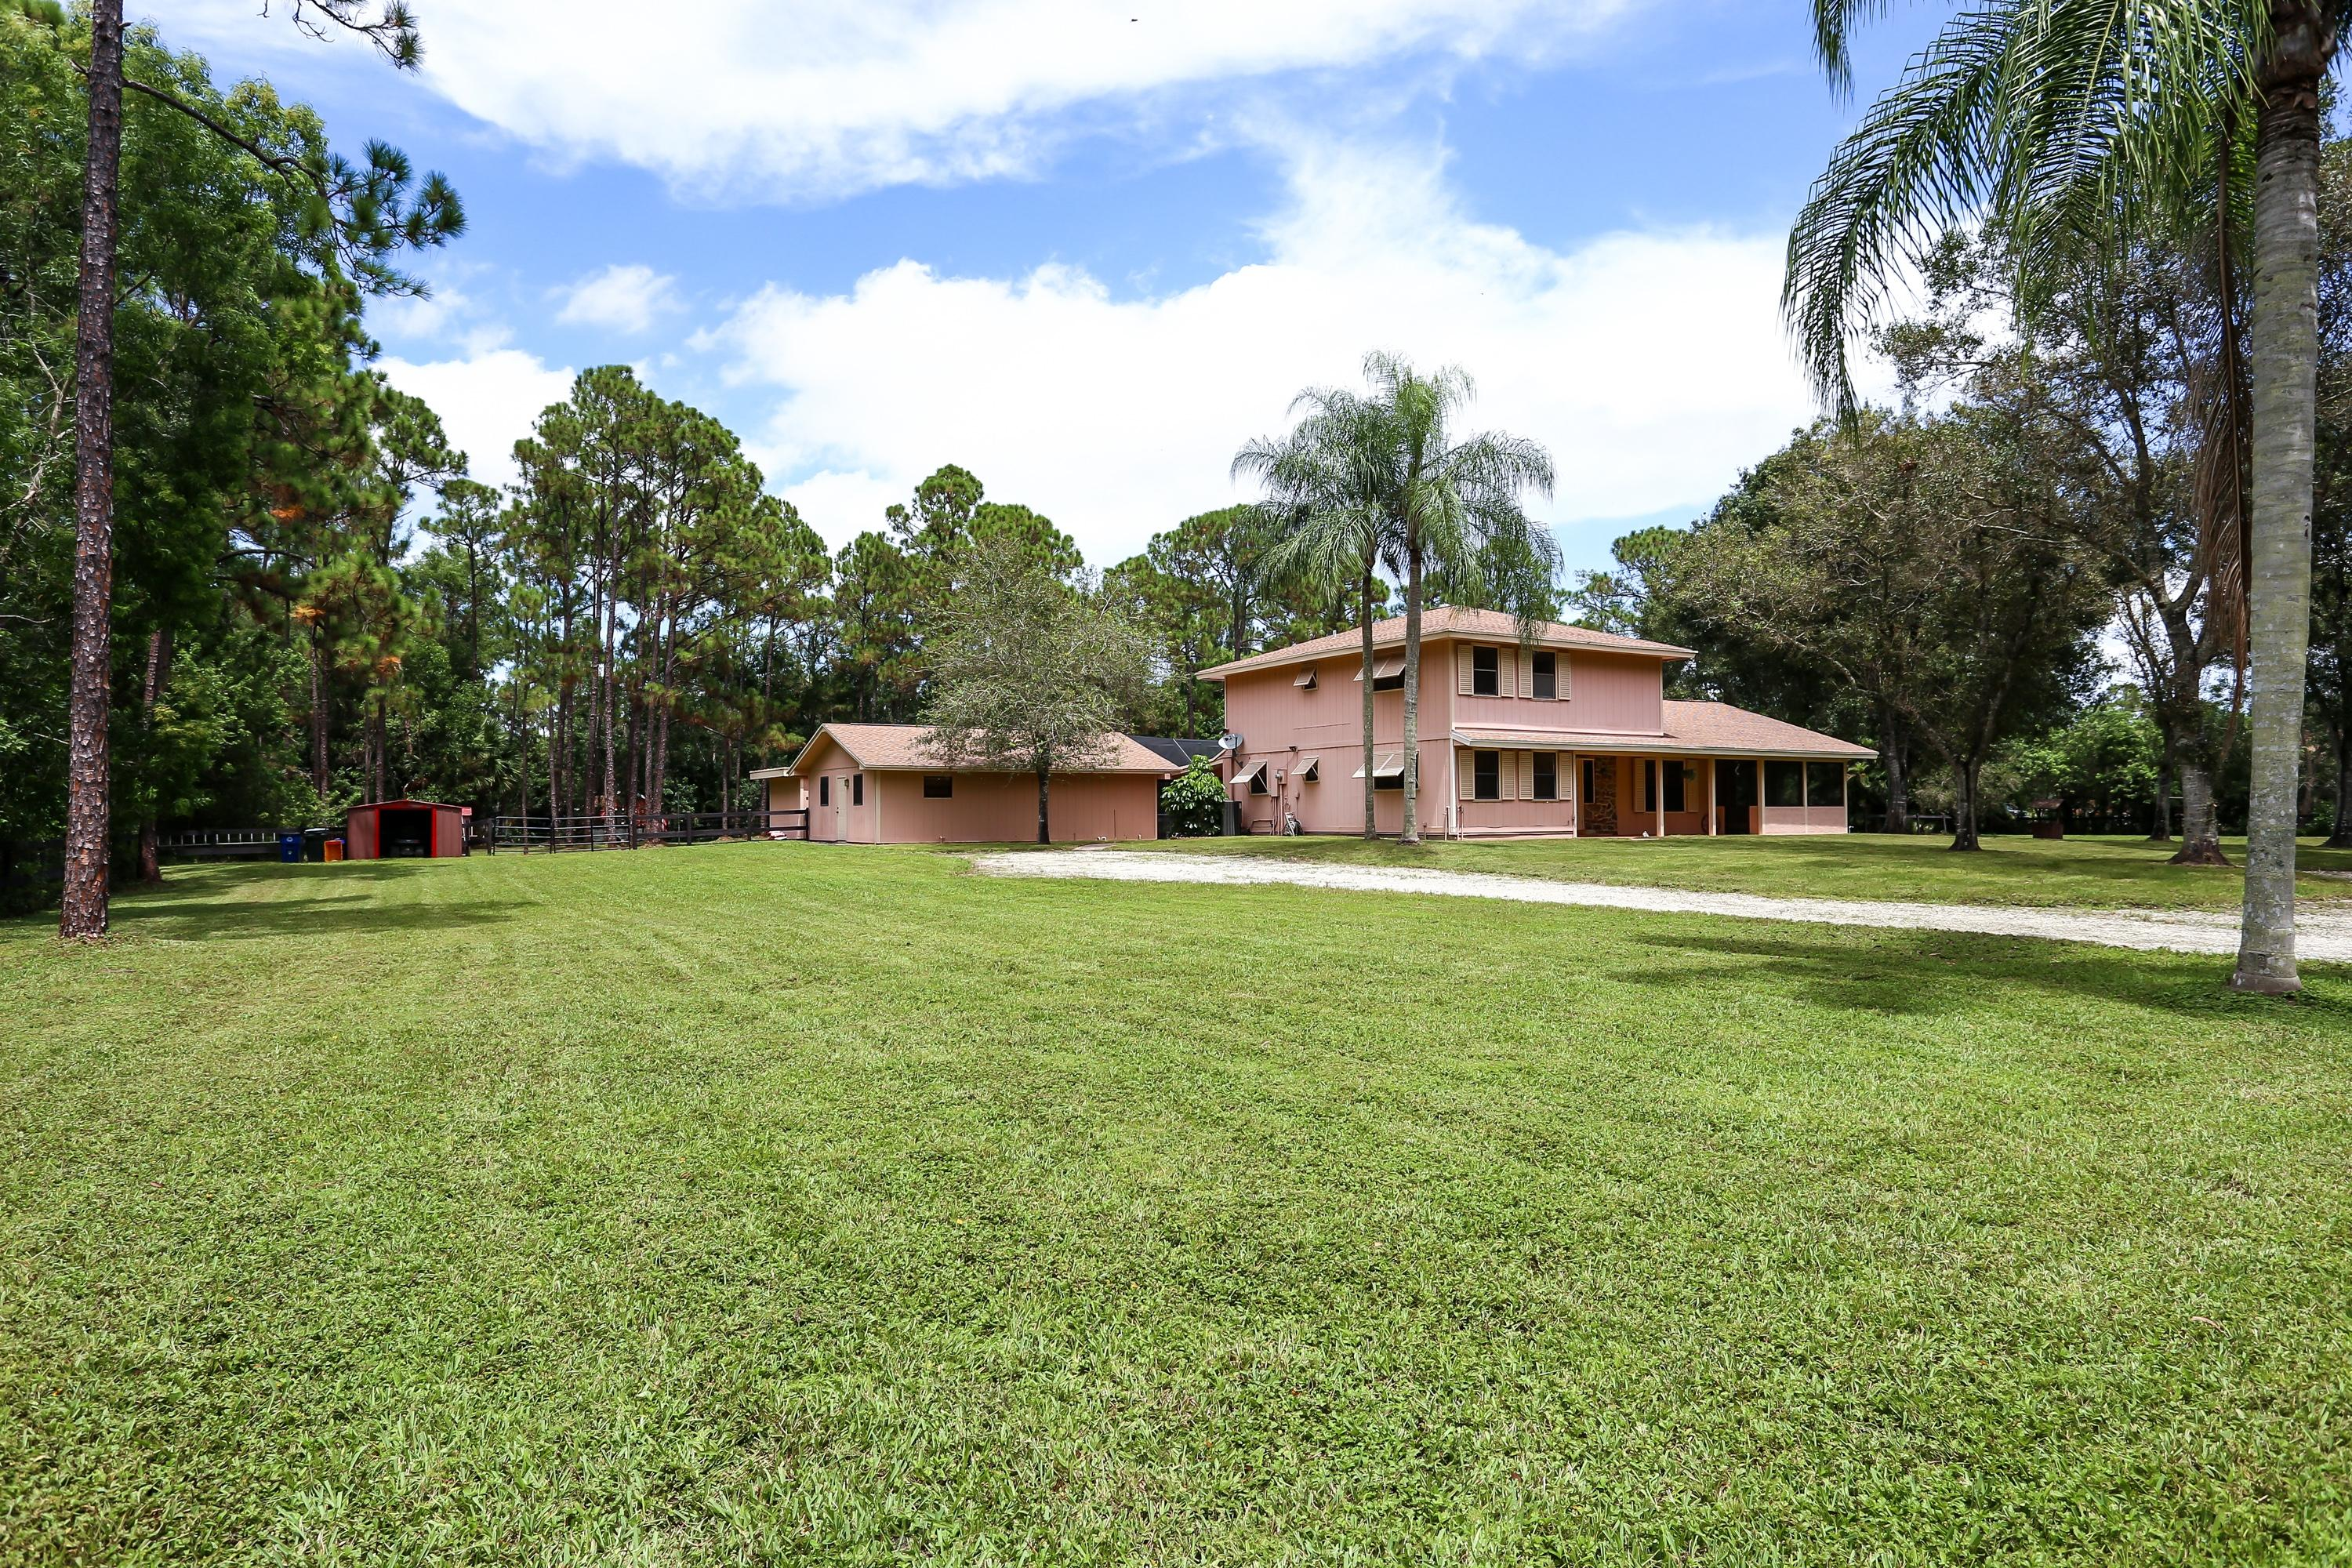 10961 56th Court S, Lake Worth FL 33449 - Photo 1